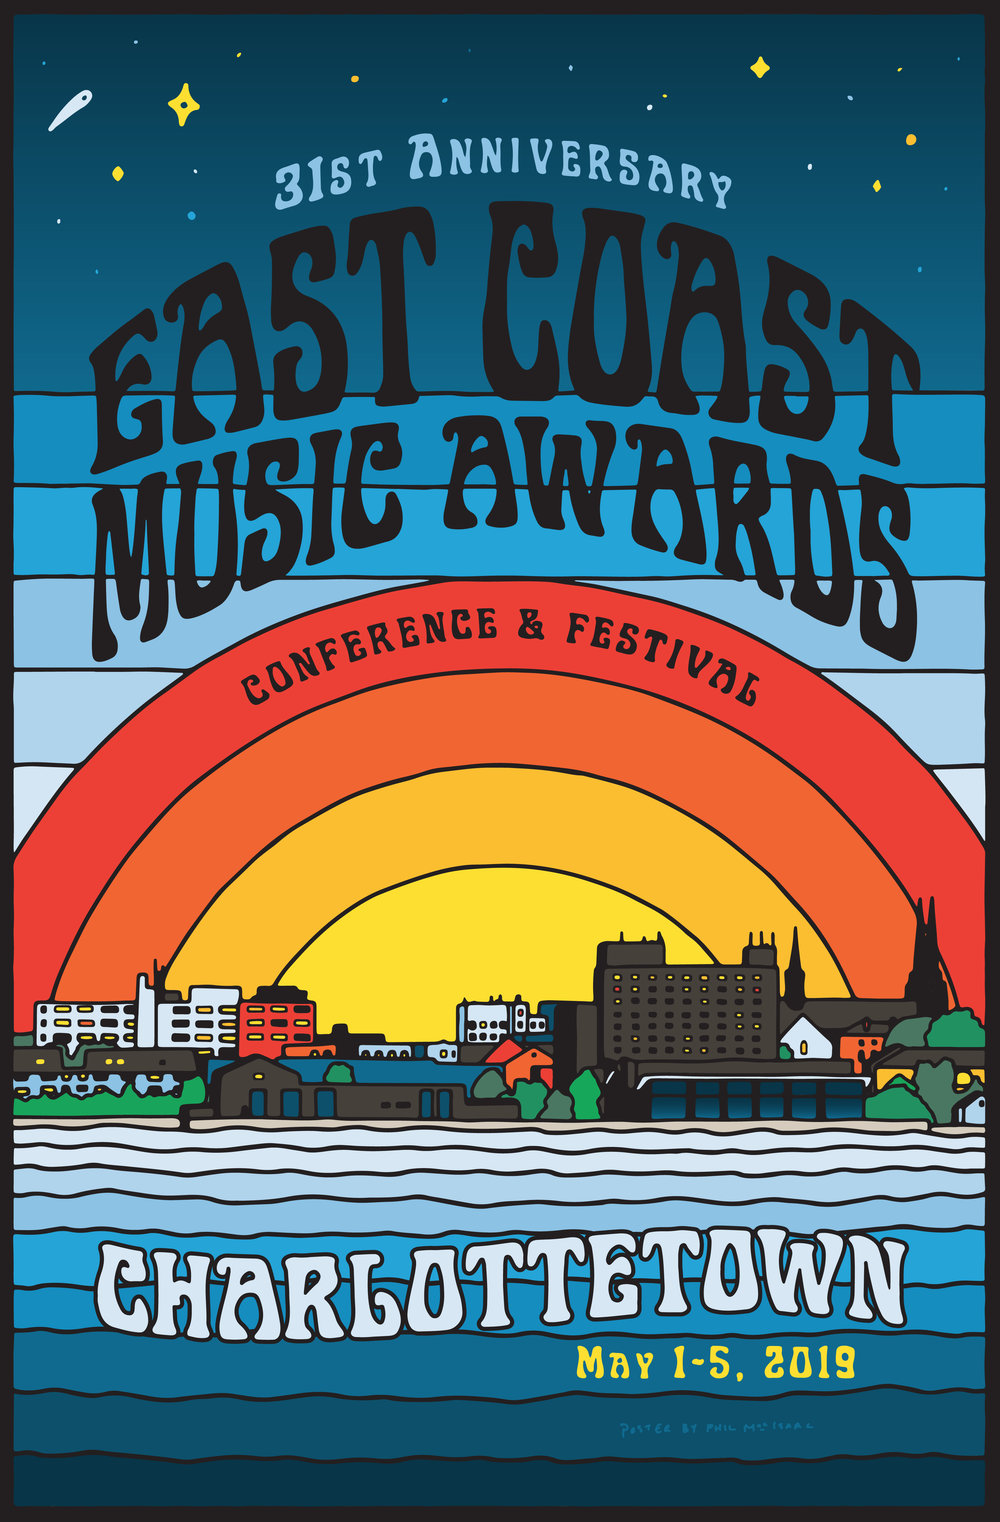 Poster for this year's ECMAs in Charlottetown. Featuring   Art-nuvo font